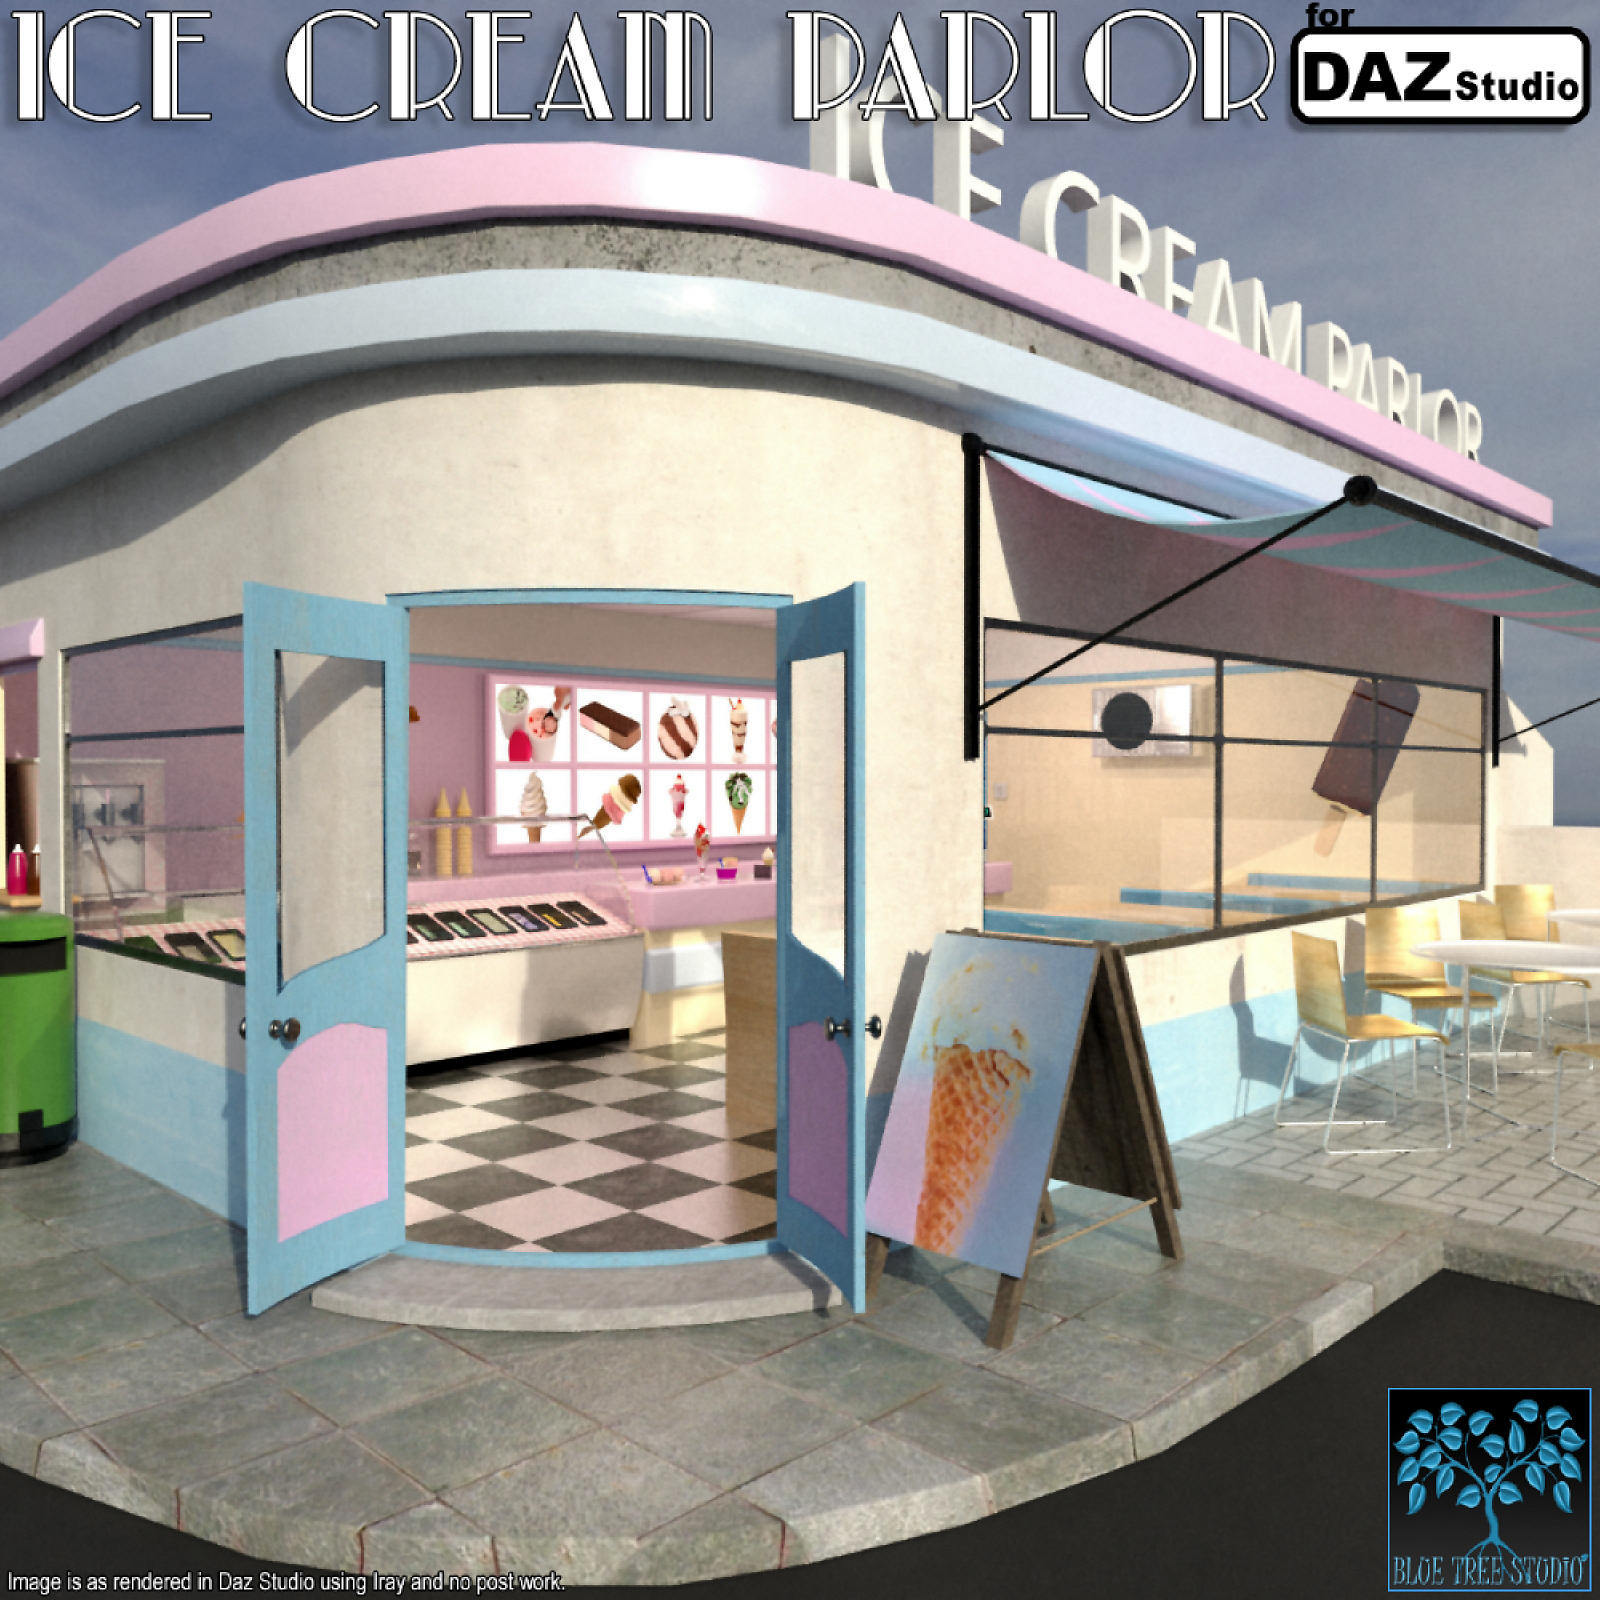 Ice Cream Parlor for Daz Studio by BlueTreeStudio